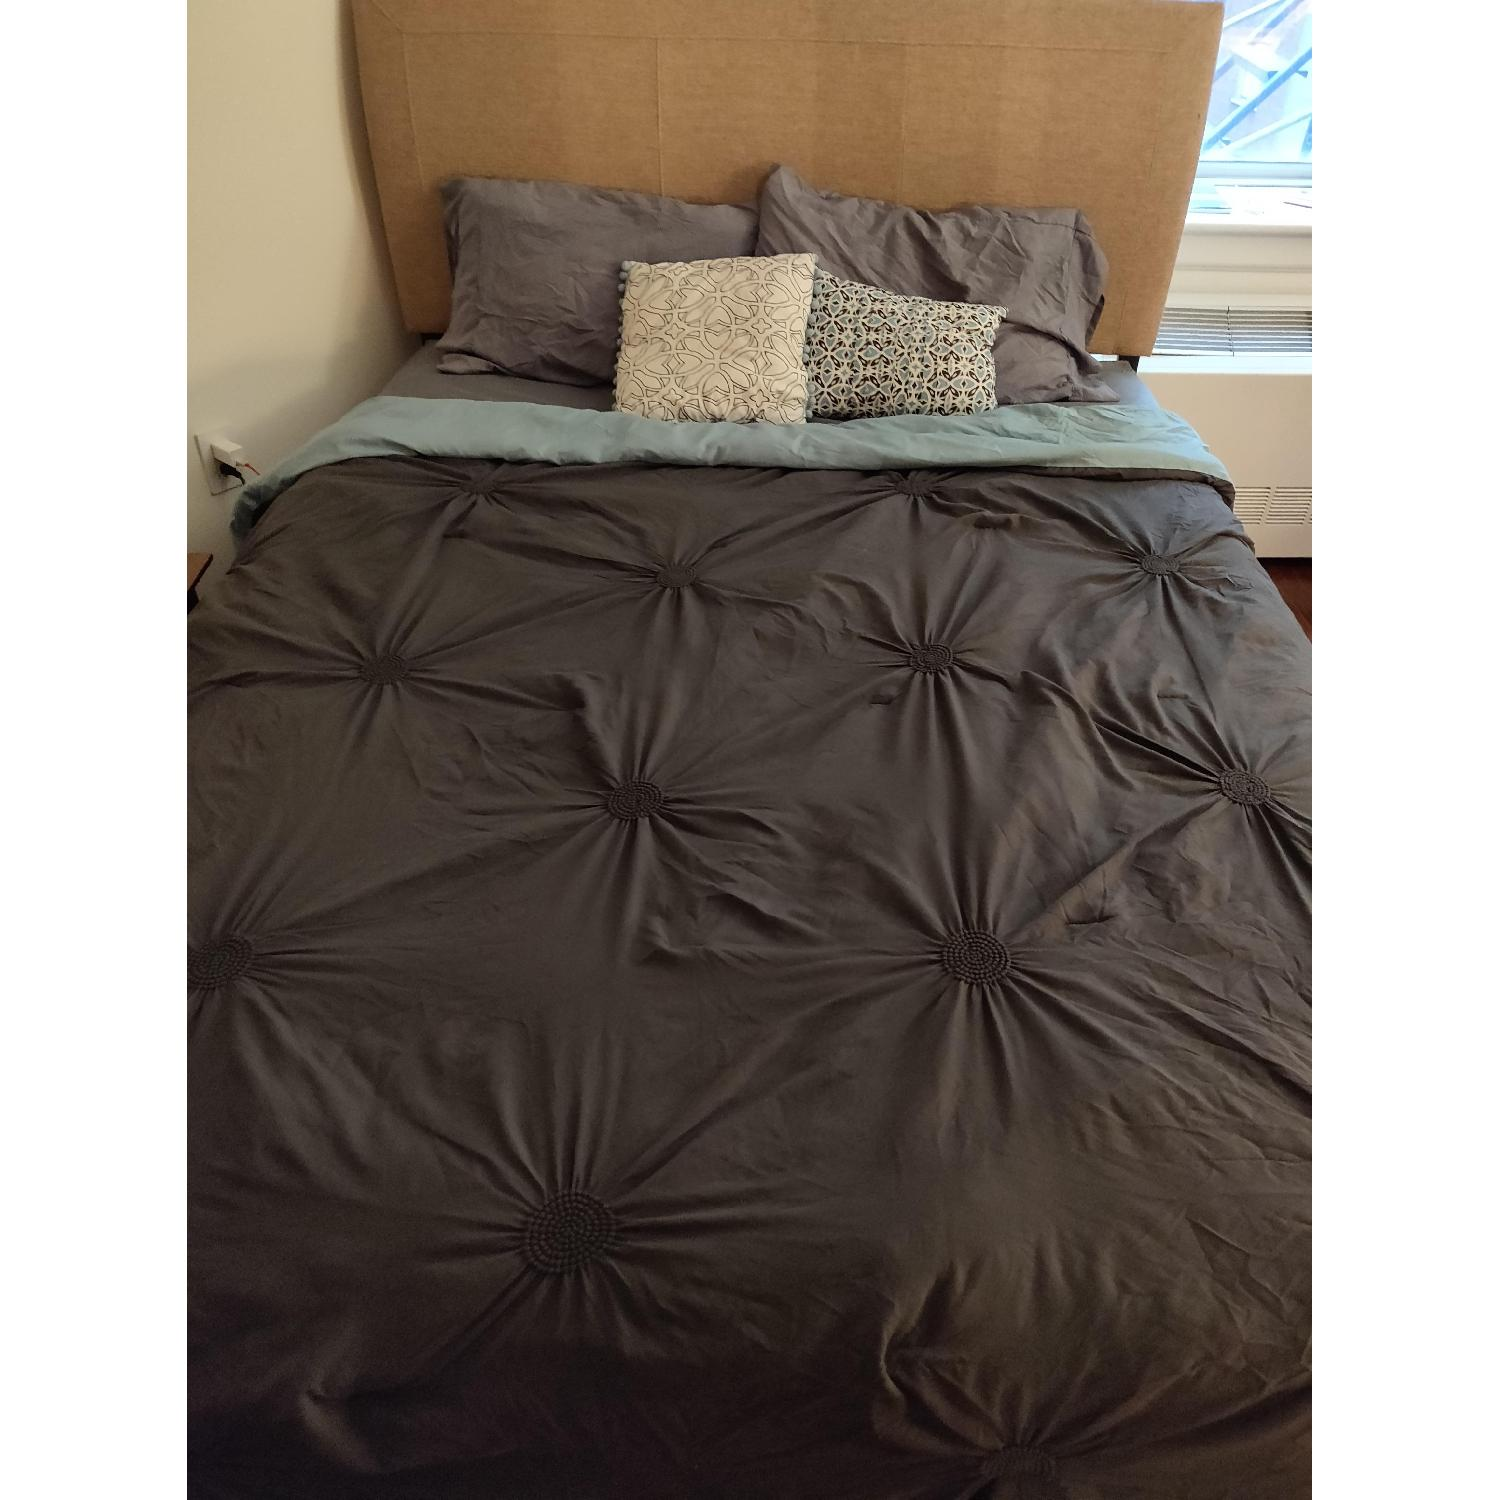 Queen Size Black Metal Bed w/ Headboard-0